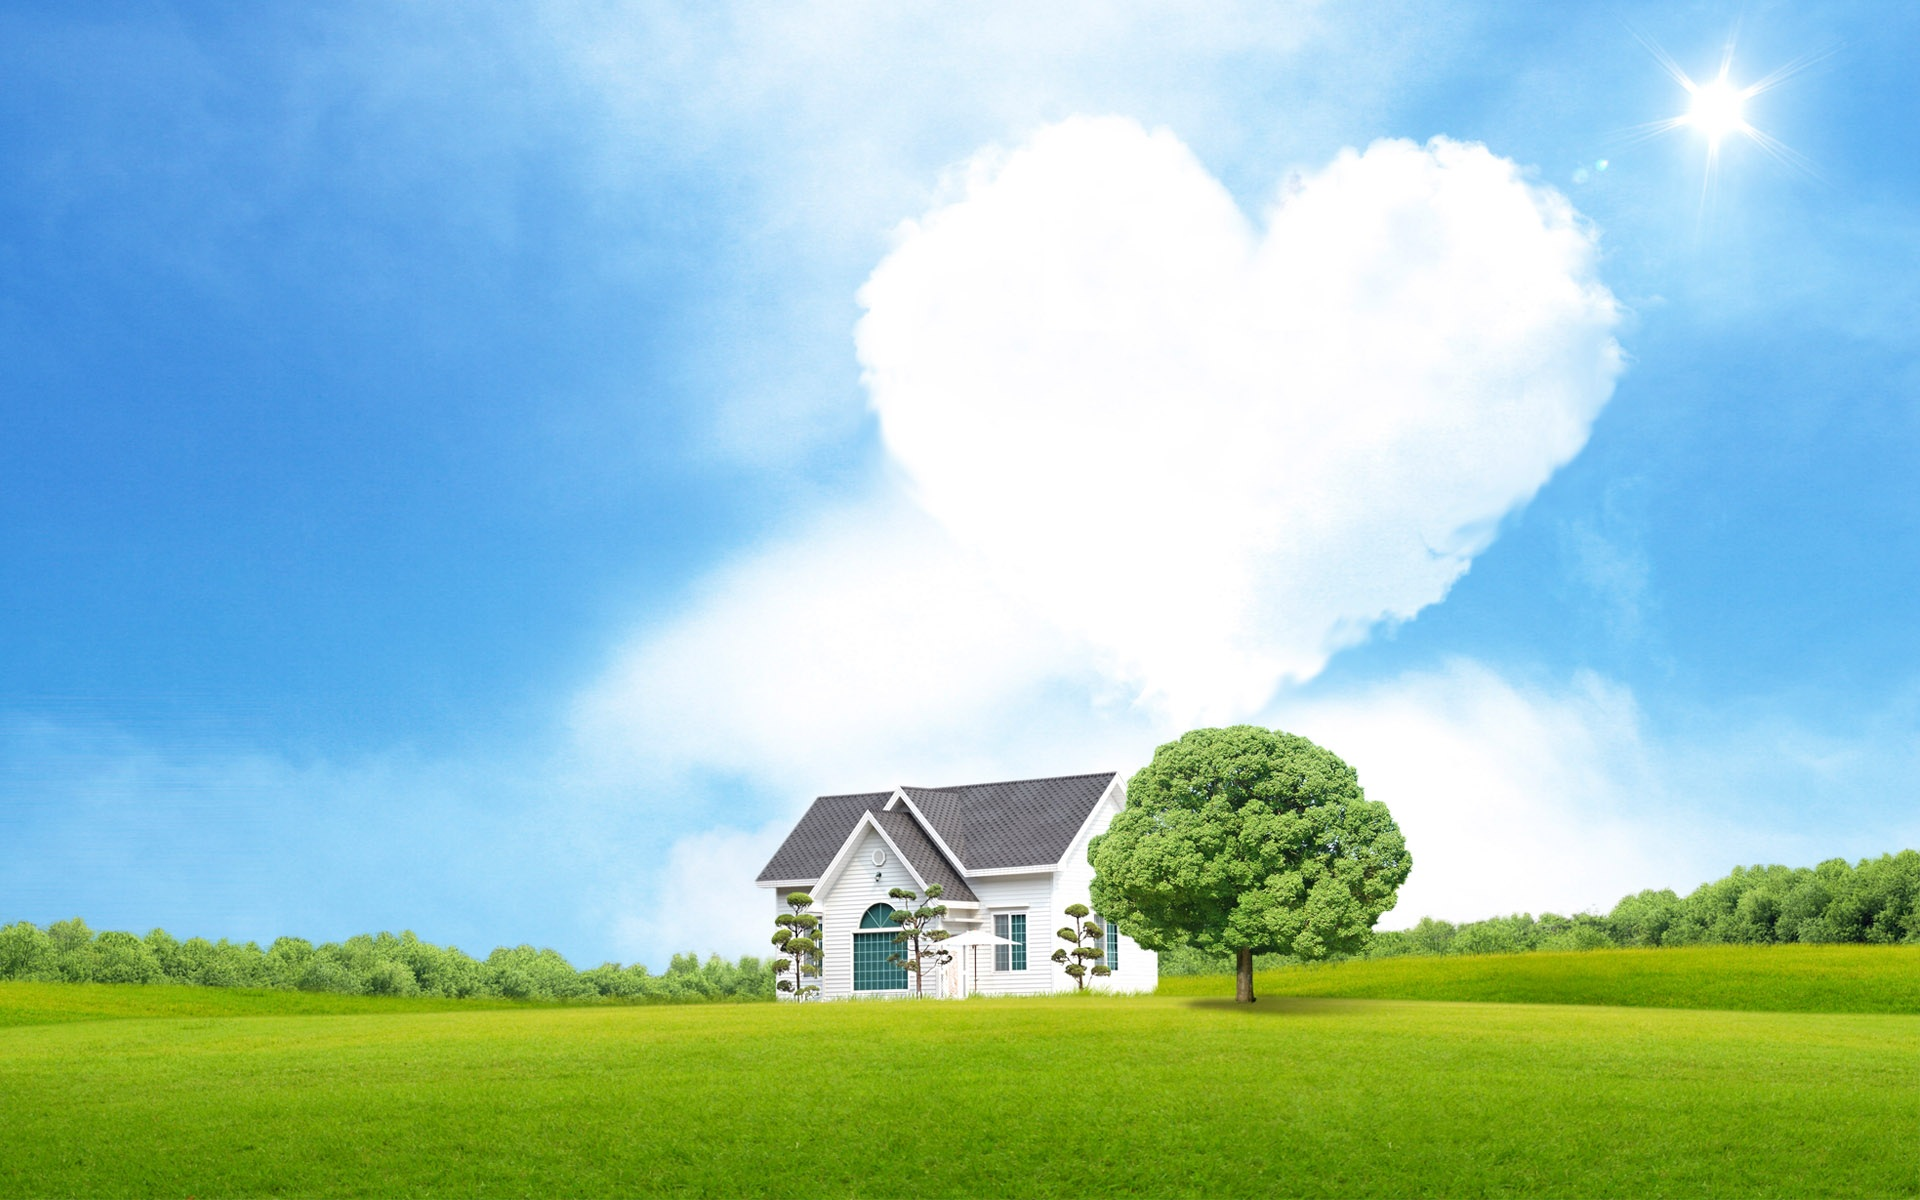 wallpaper heart-shaped clouds of love 1920x1200 hd picture, image